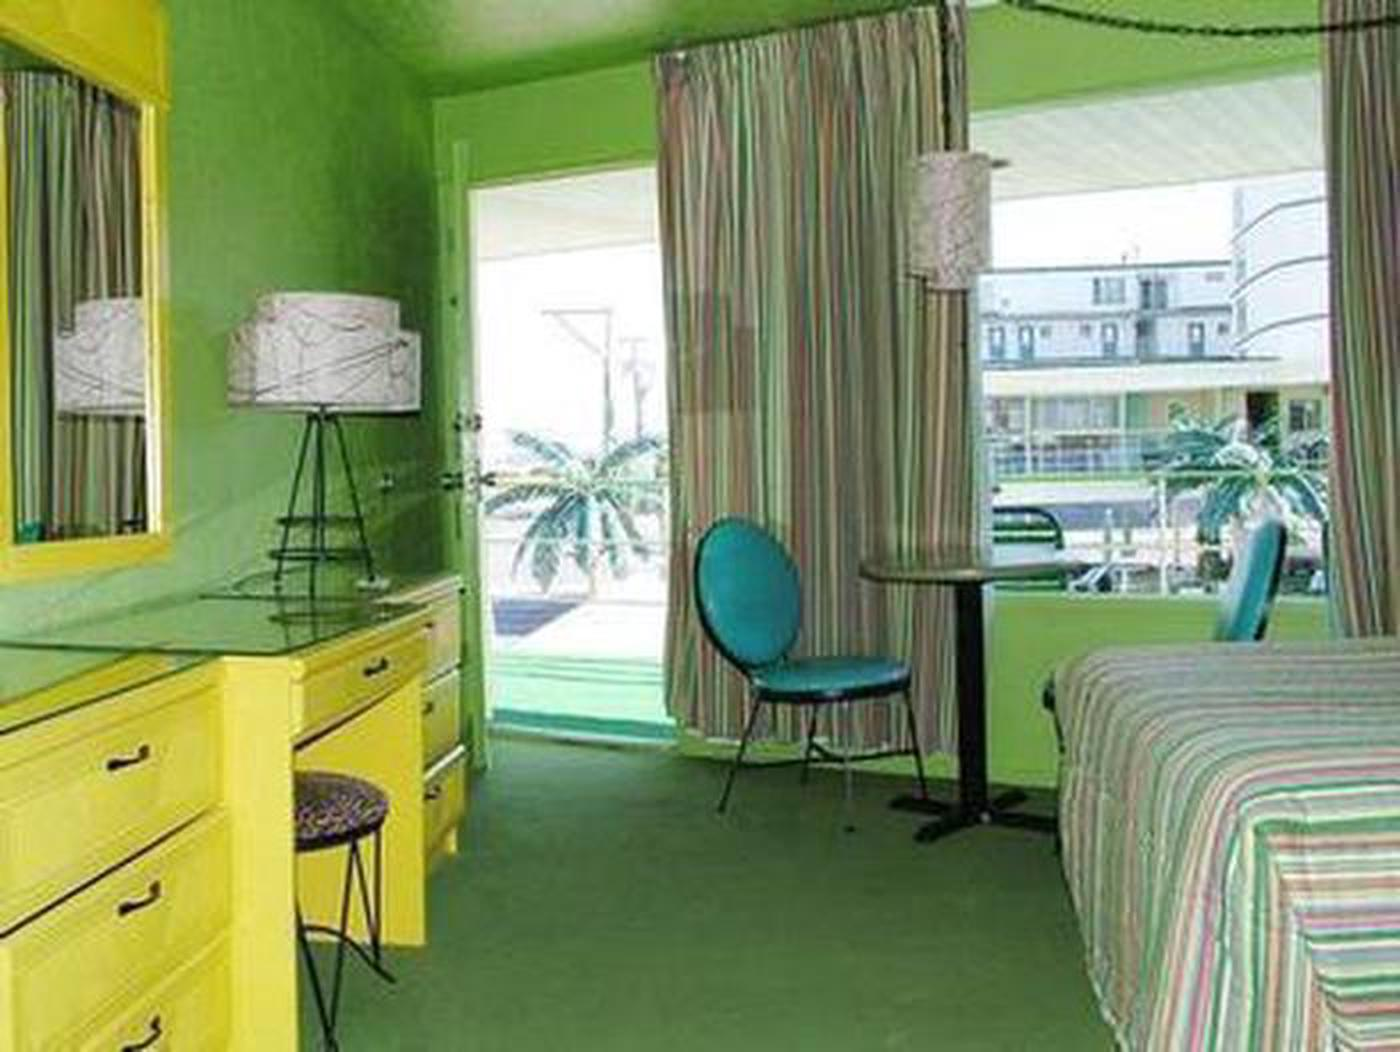 Stay at the CaribbeanThe bright green and yellow rooms at the Caribbena evoke doo-wop style while welcoming your family, from standard motel rooms, efficiencies with kitchenettes, and an ocean view suite.